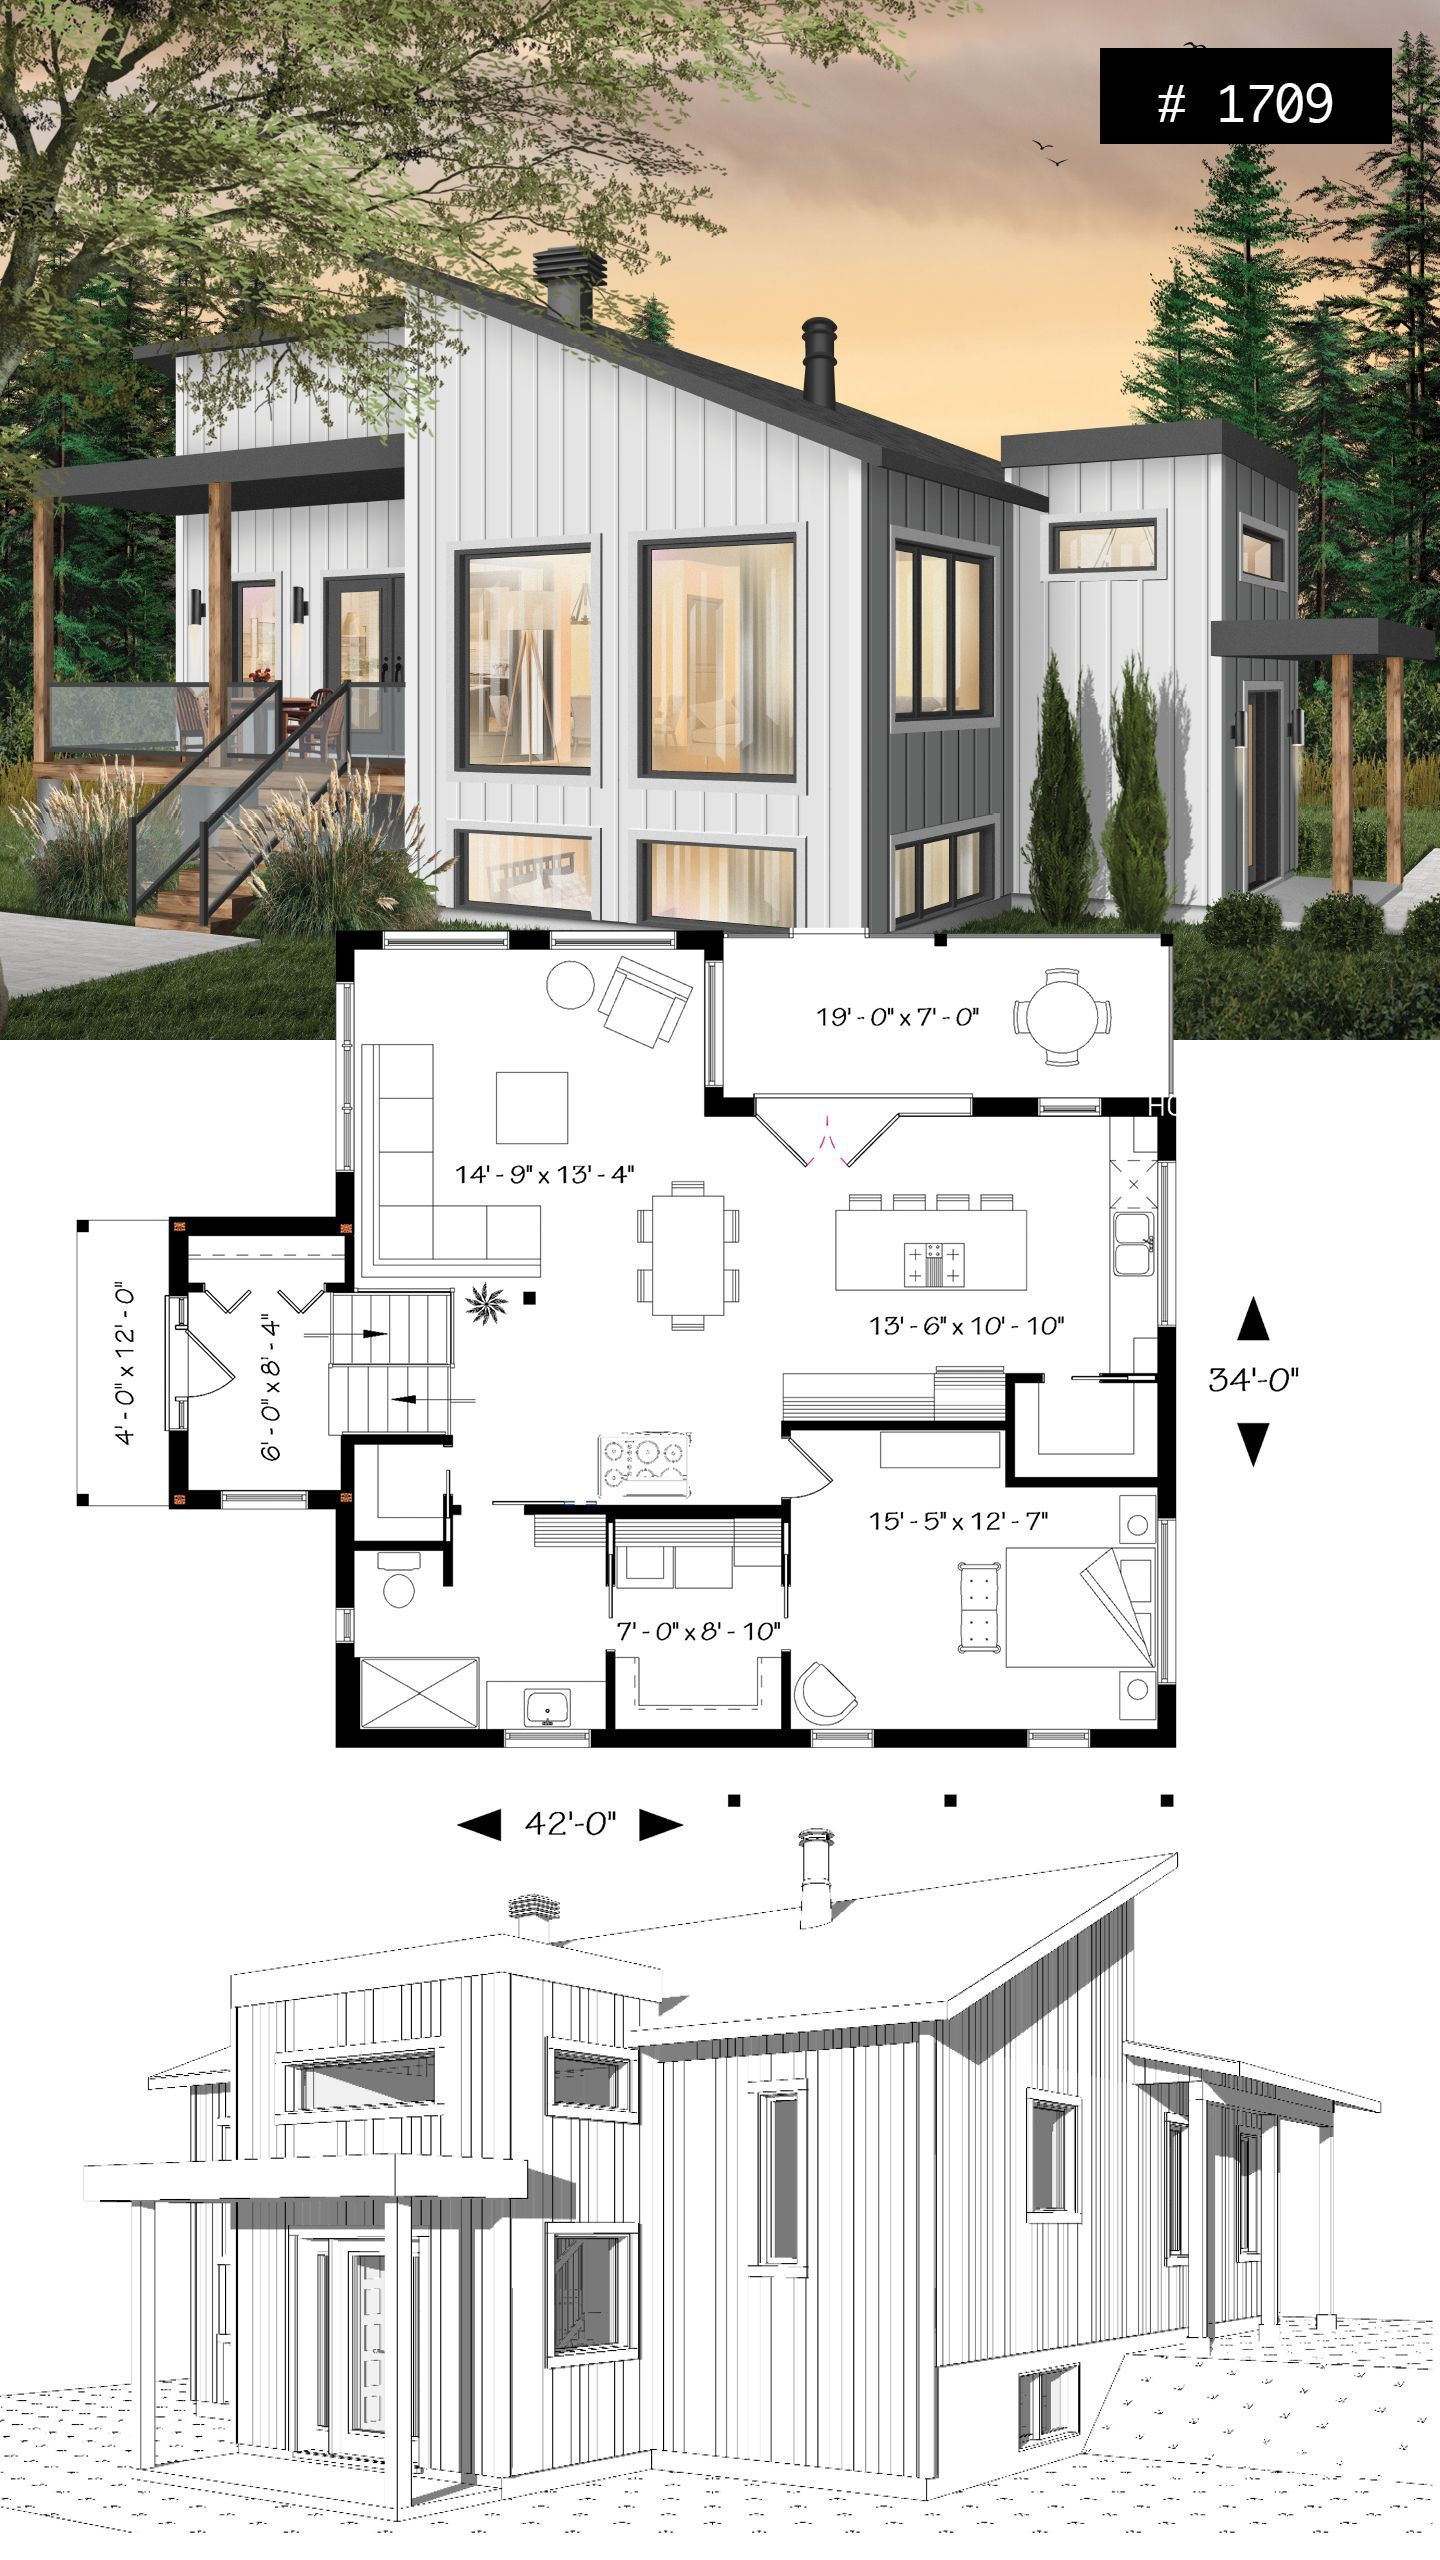 House Plans With Basement Garage In 2020 Unique House Plans Small Modern Home Basement House Plans